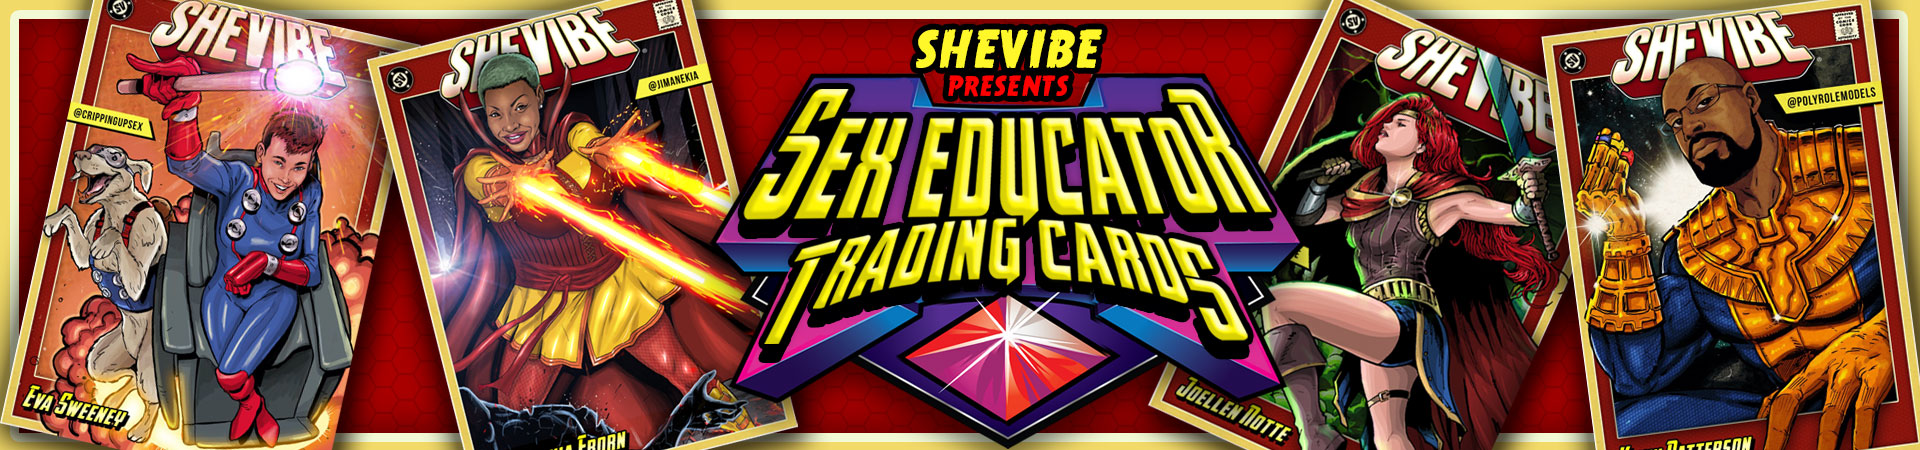 SheVibe Presents: Sex Educator Trading Cards!